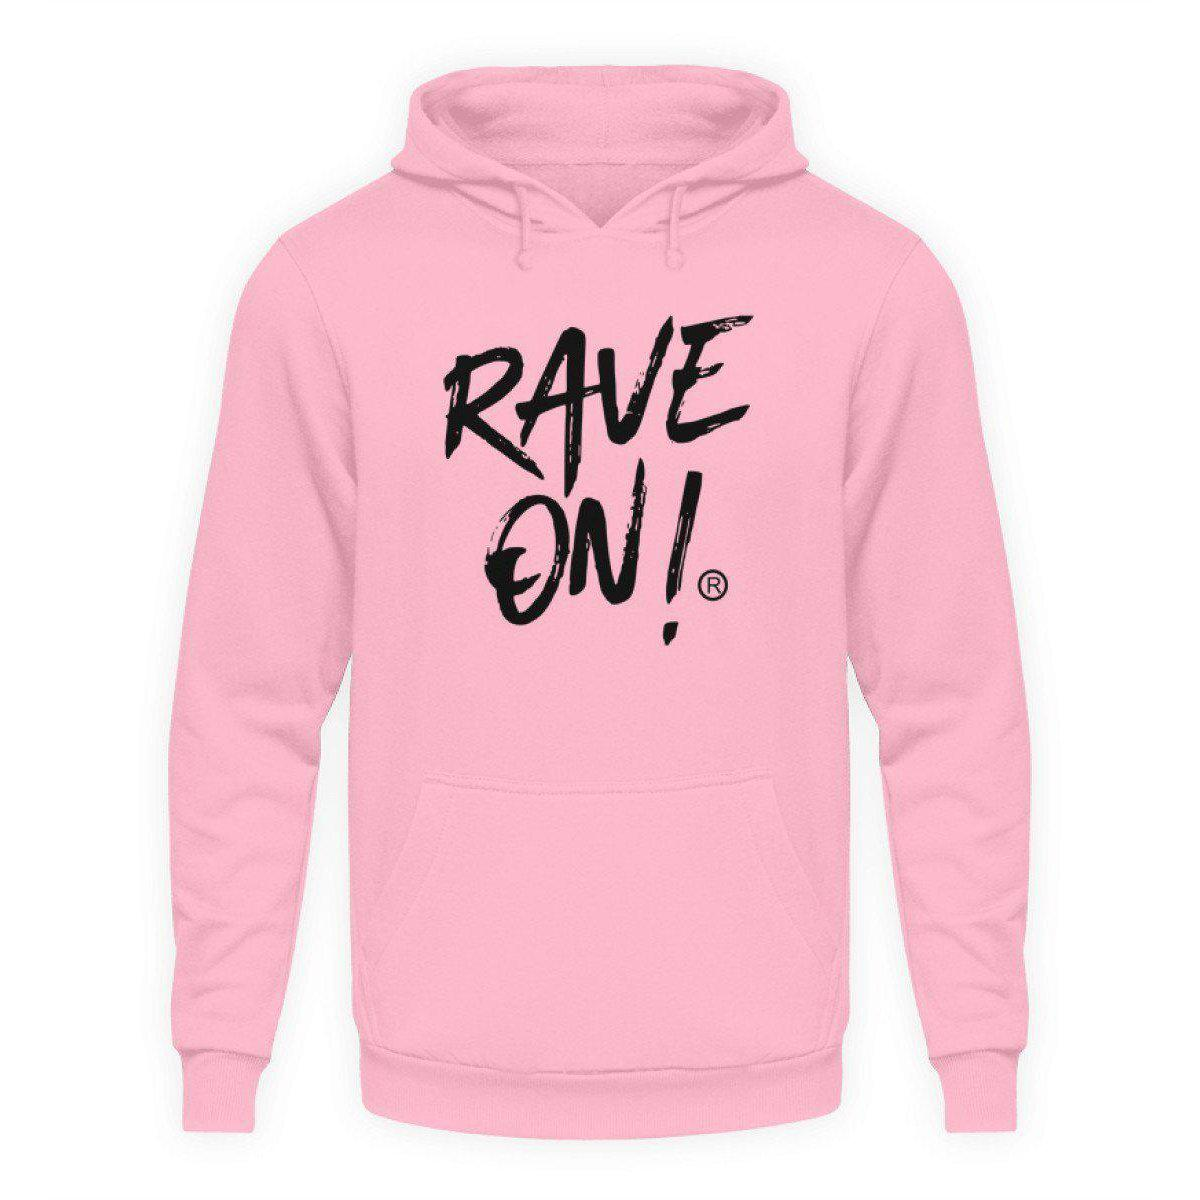 Rave On!® Light Collection - Unisex Hooded Sweater Hoodie Unisex Hoodie Baby Pink / L - Rave On!® the club & techno scene shop for cool young fashion streetwear style & fashion outfits + sexy festival 420 stuff